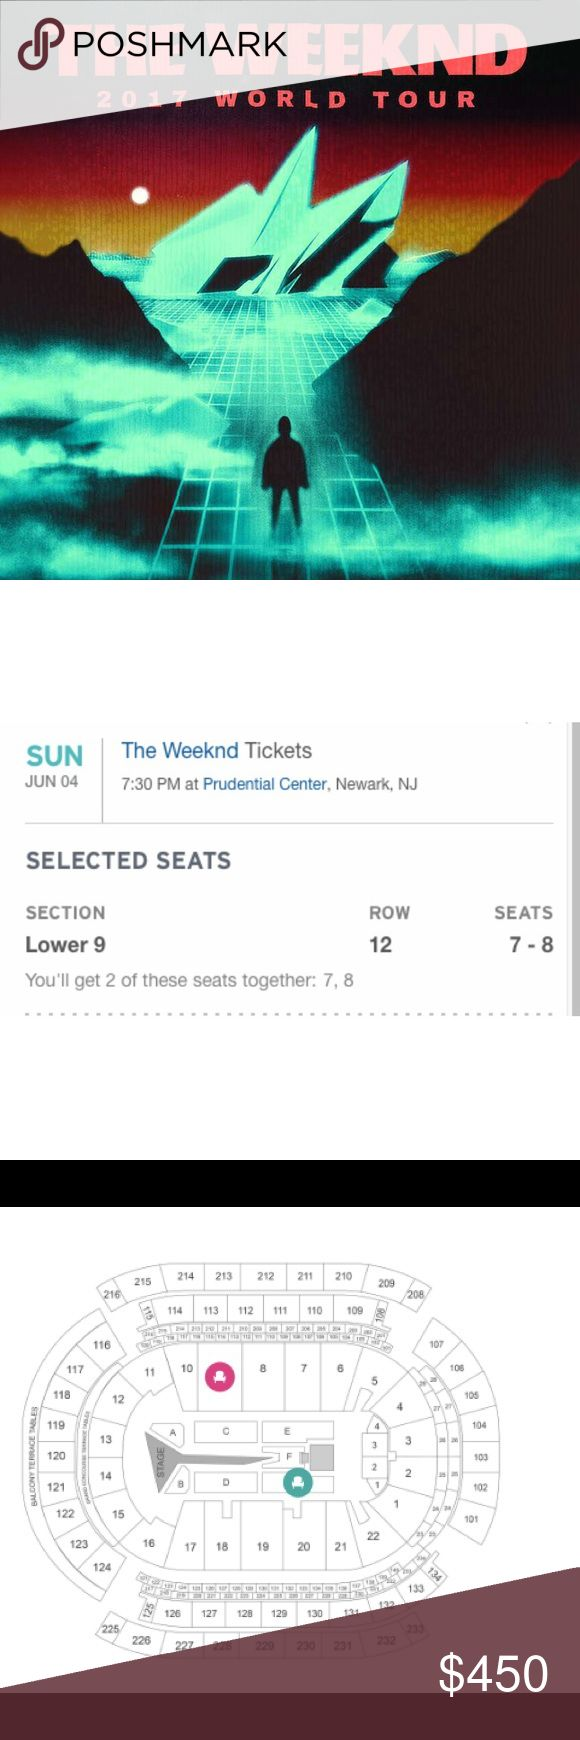 2 Tickets for The Weeknd in concert Newark NJ I have 2 tickets in a truly amazing section, with great close views of the stage. Section 9 Row 12 Seats 7 & 8!!!   June 4th at the Prudential Center Newark NJ  Seats come together! $50 Lower than on StubHub or Ticketmaster because no processing fees!   $450 AND PRICE IS FIXED!!!!!!!!!!!!!  Tickets will we mailed! Adidas Shoes Sneakers